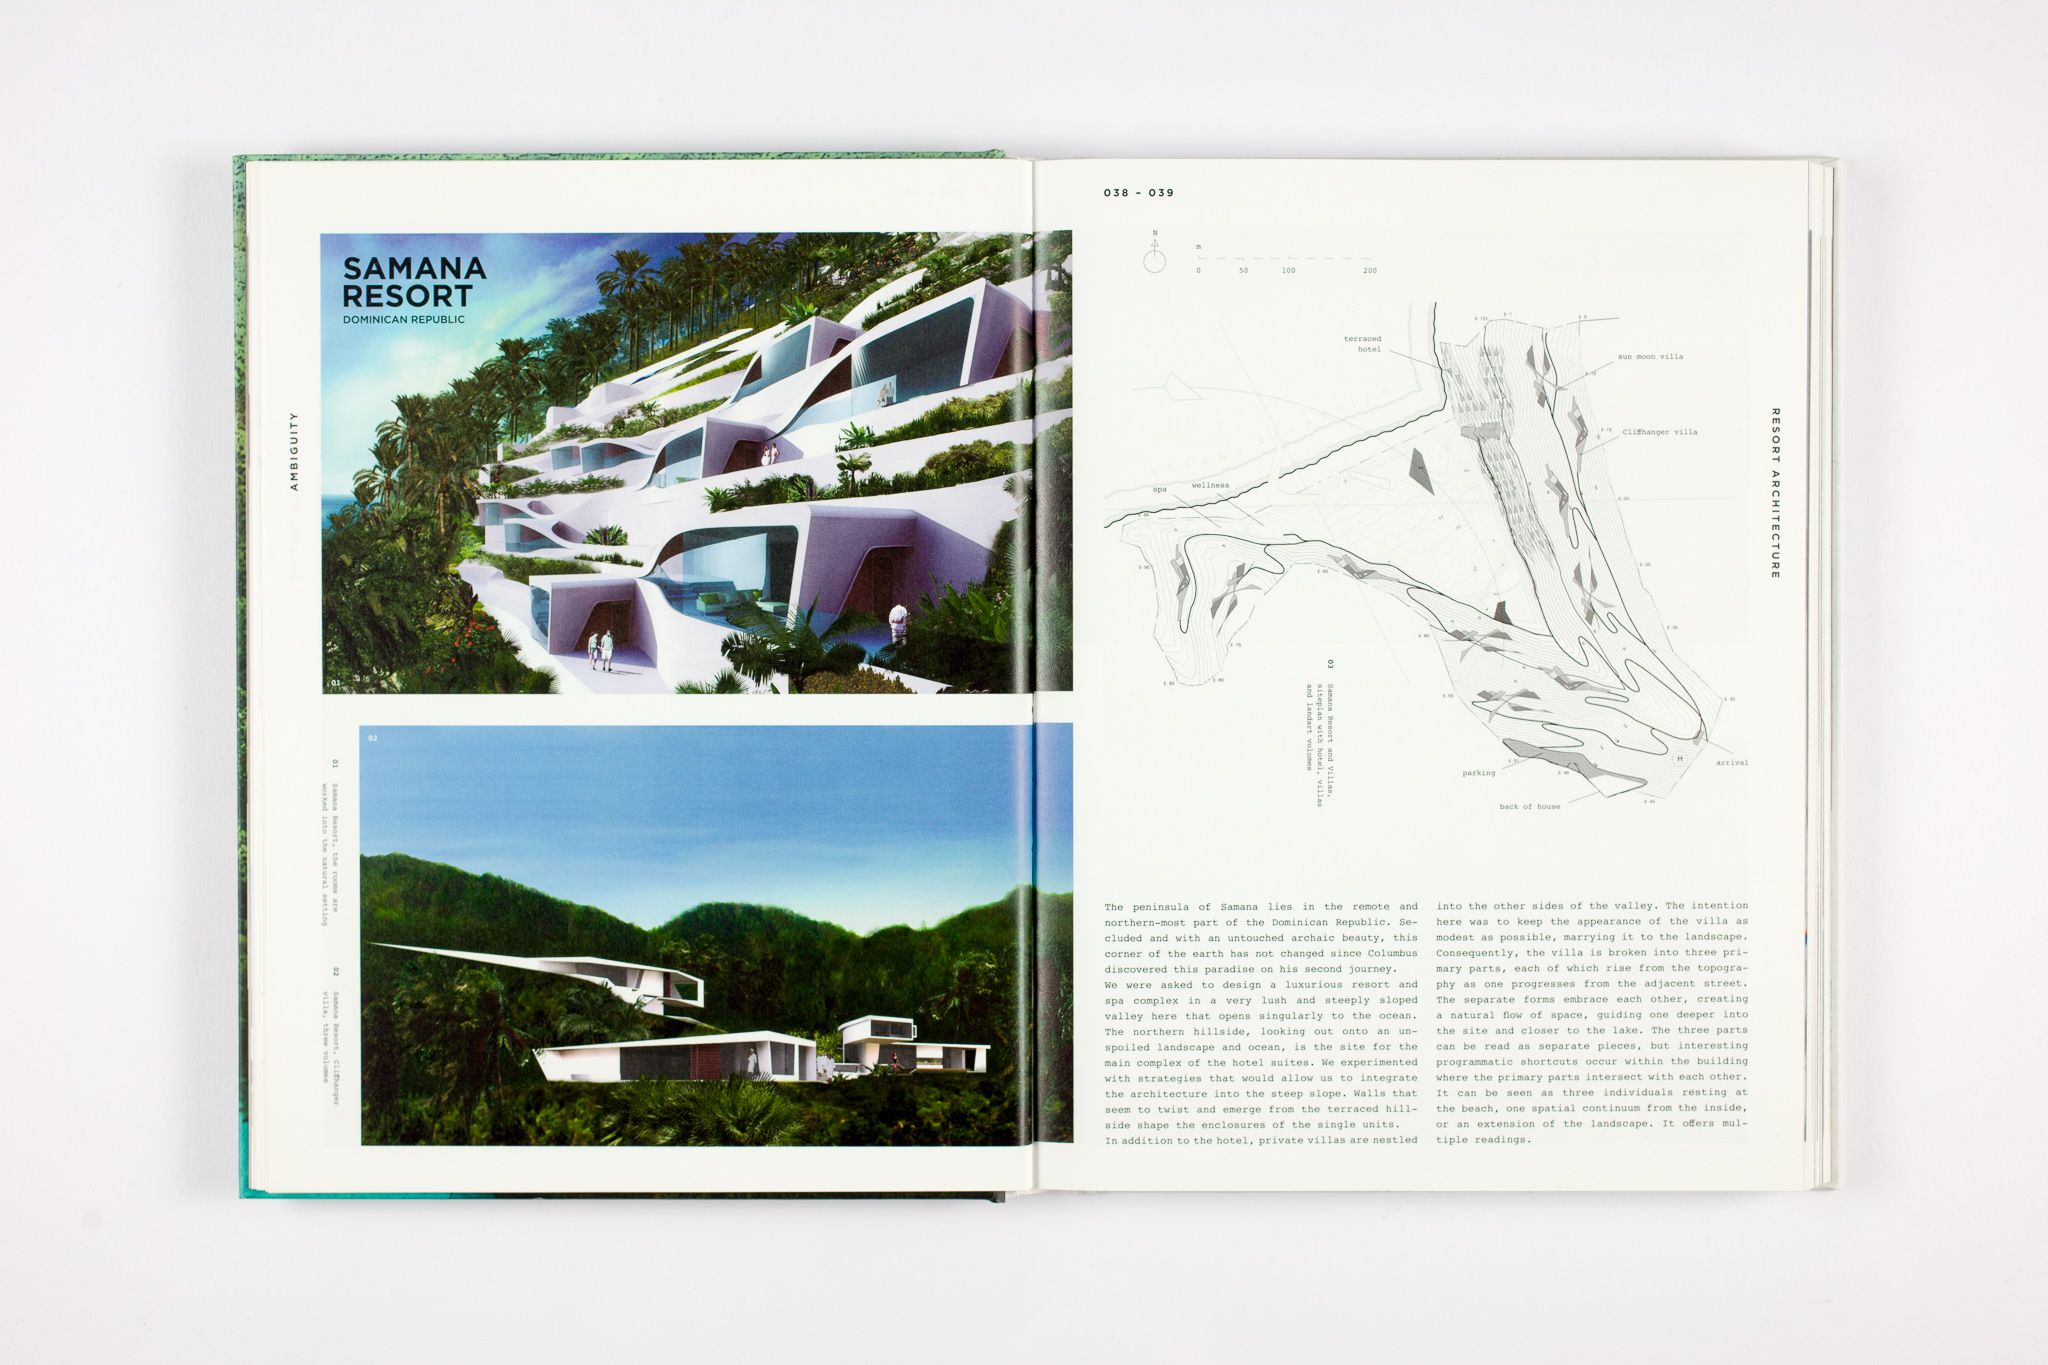 Architecture must improve our lives, not just fulfil functional or aesthetic requirements. In the search for quality and beauty, complex form and ambiguity are part of the essence of an architecture that goes beyond what is 'patent' and 'correct'.